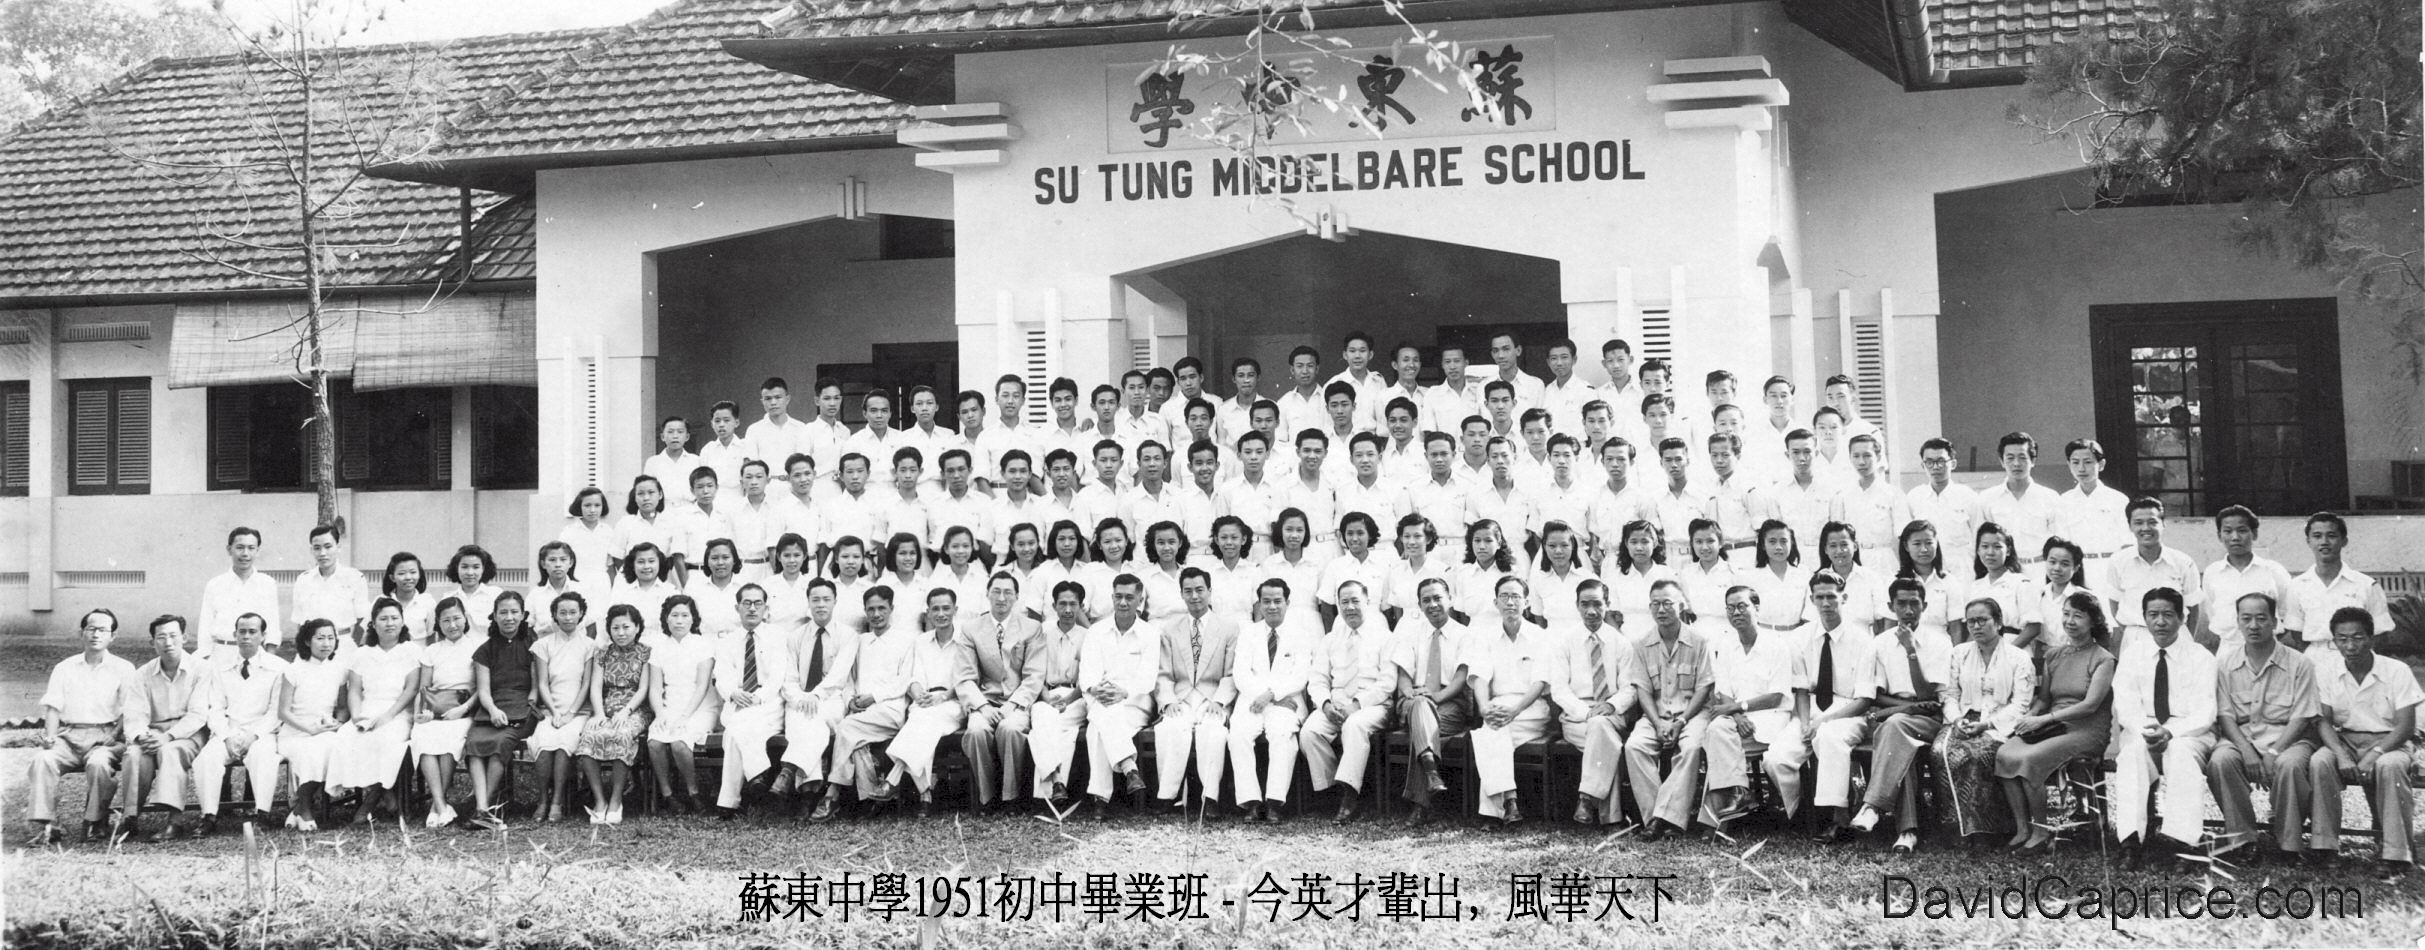 苏东中学1951初中毕业班师生合影, Su Tung Middle School Junior High Graduation 1951